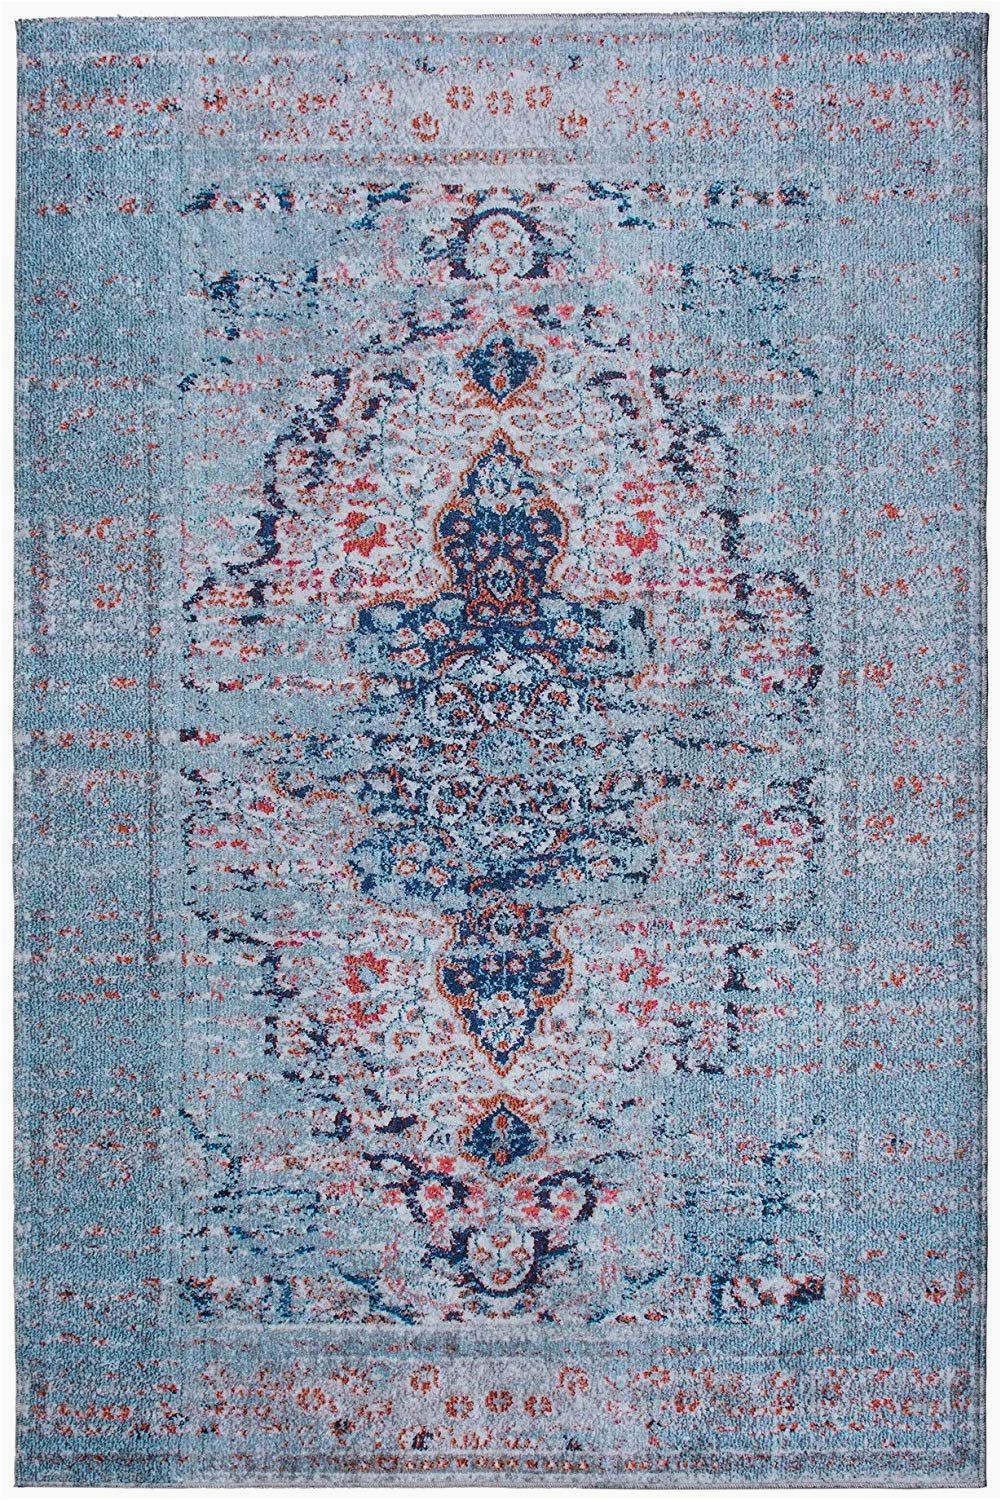 Blue and White Patterned Rug Machine Washable Distressed area Rug